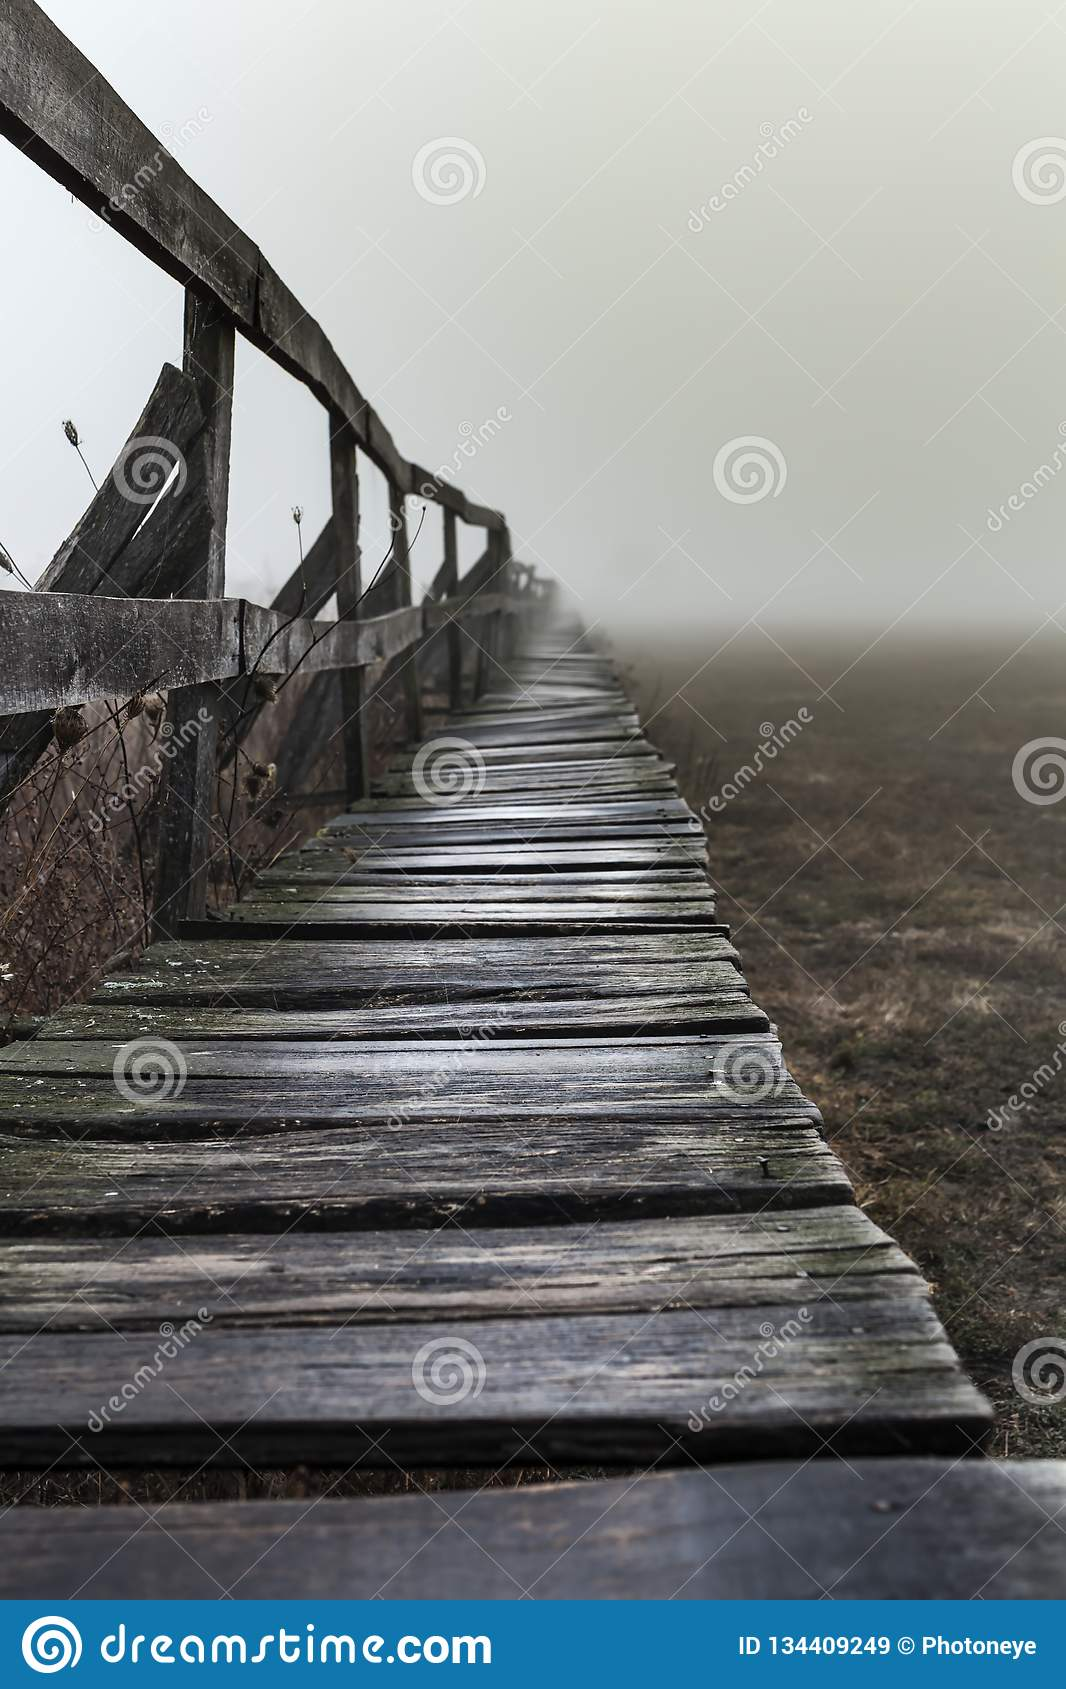 Shape of a pier near a lake, wintertime on a foggy morning, in Sic village, Trannsylnia, Romania